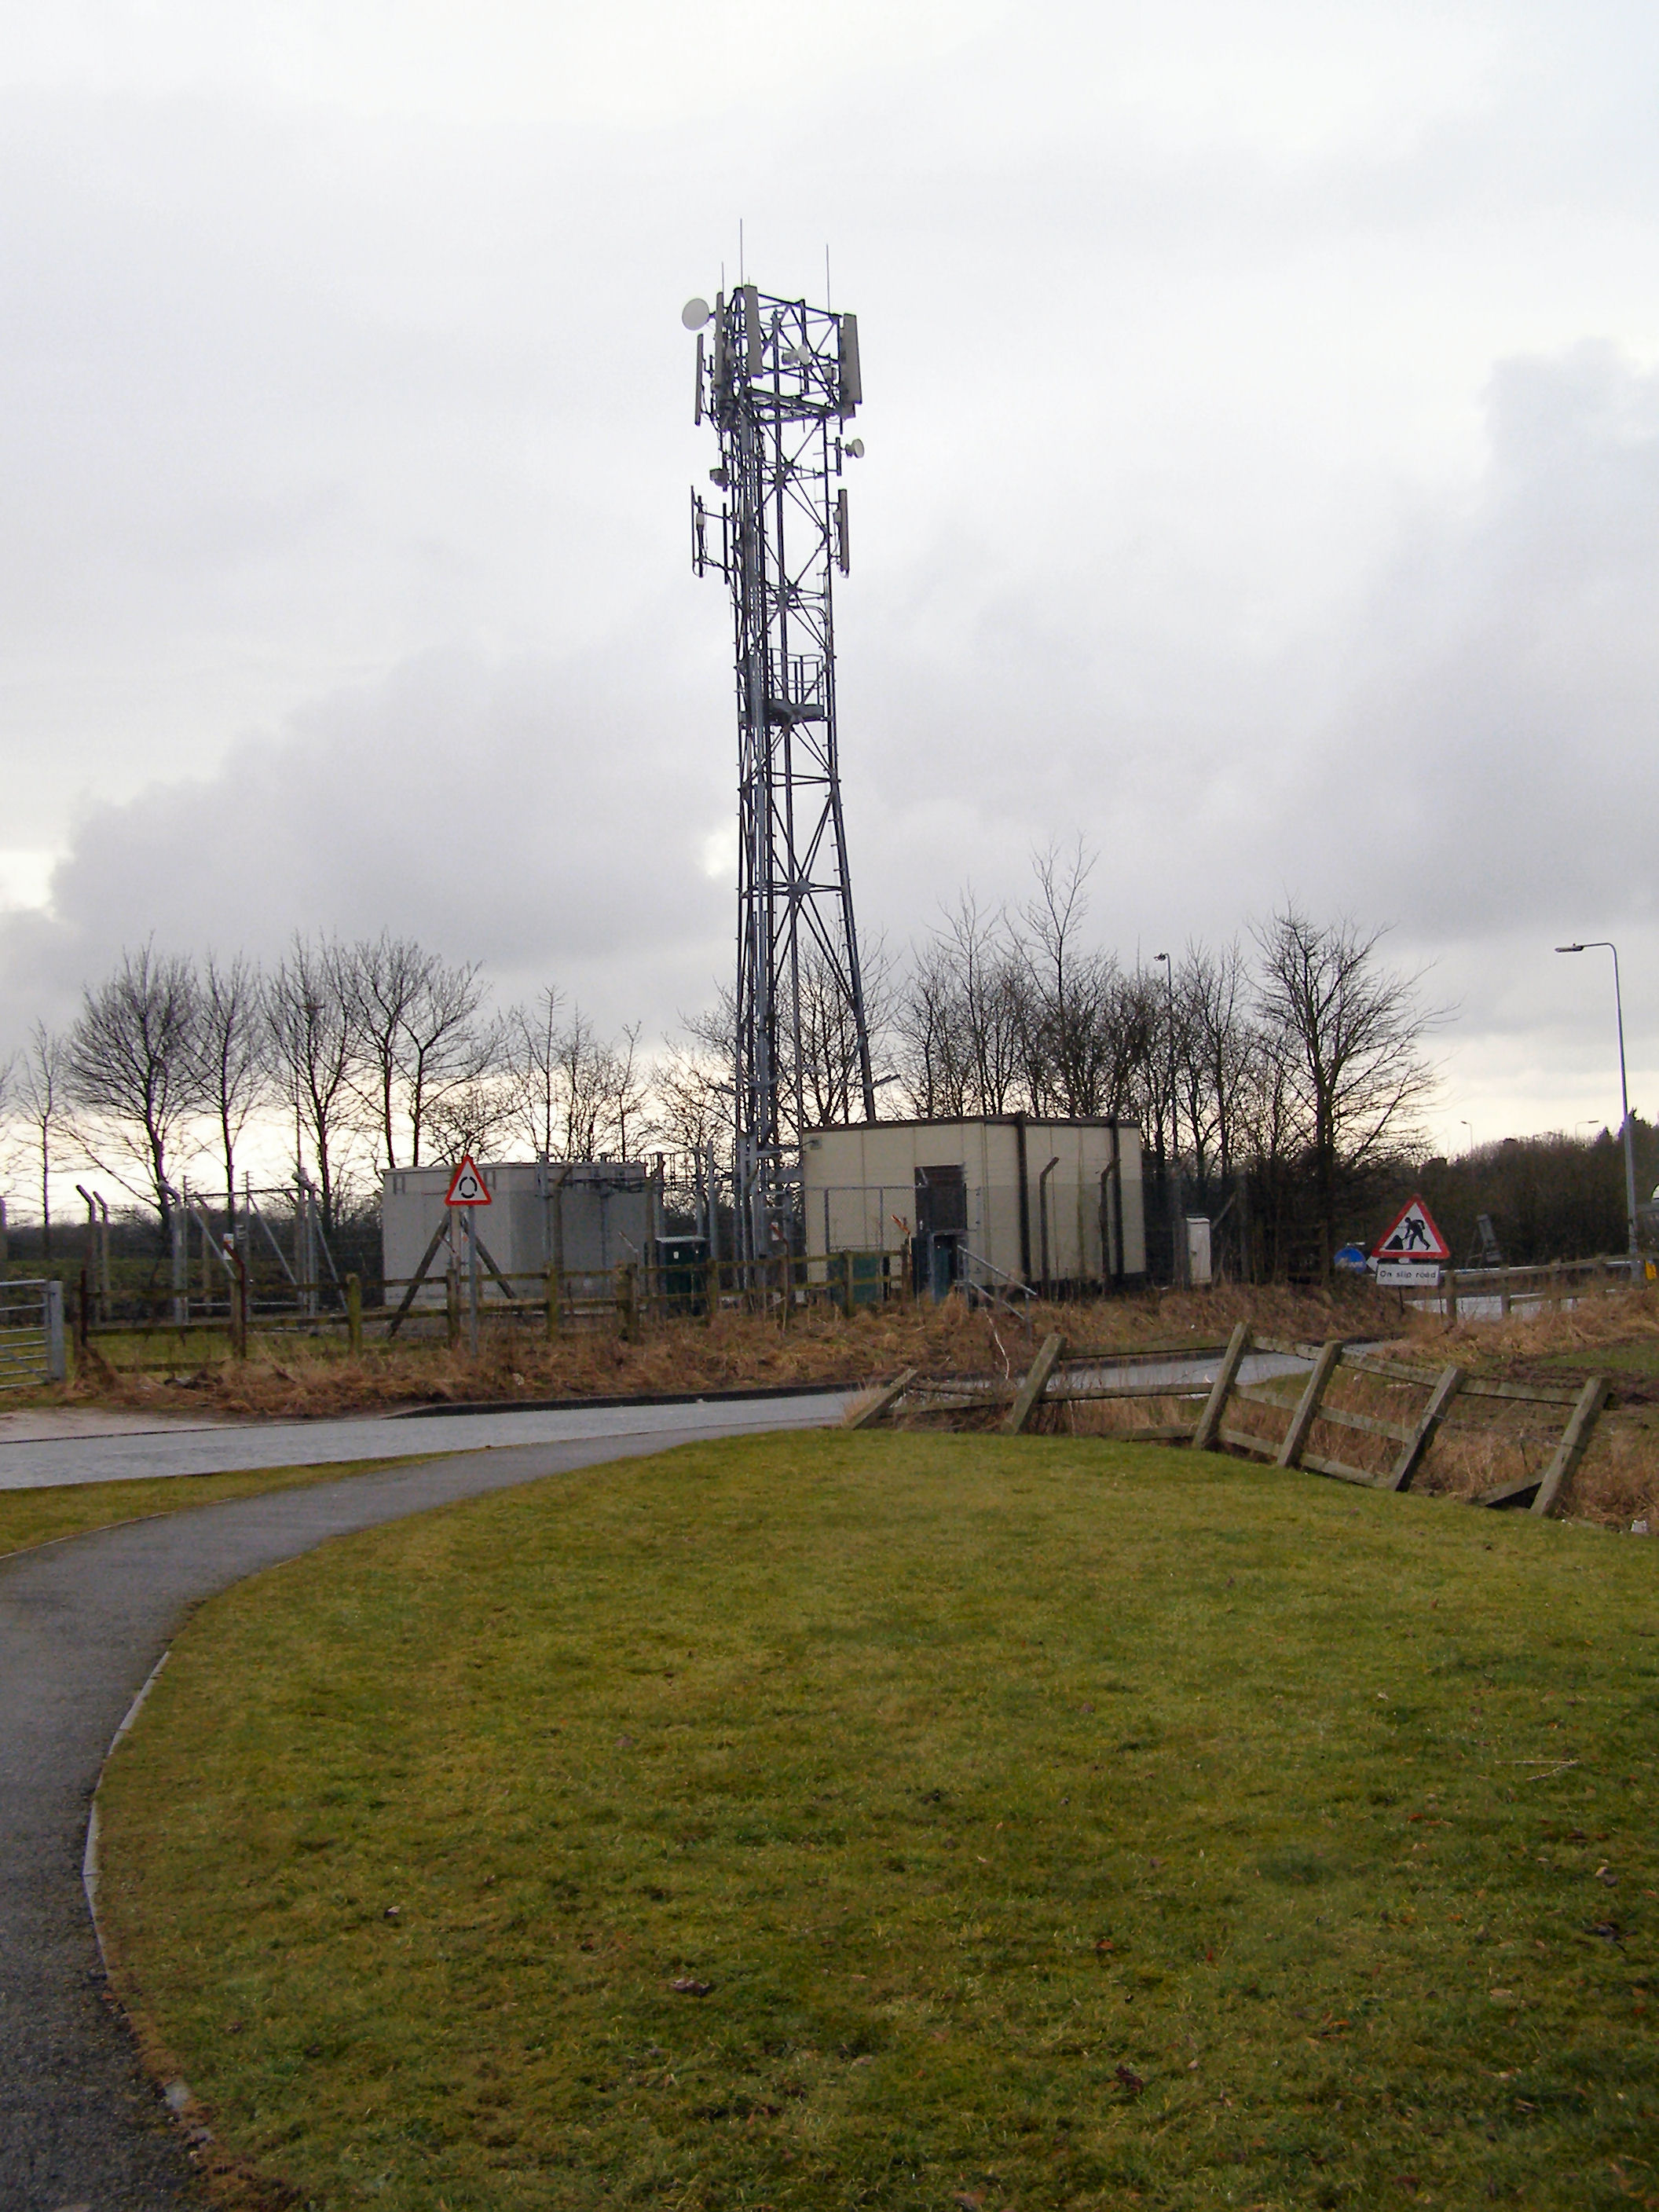 File:Mobile phone mast - geograph.org.uk - 1725538.jpg - Wikimedia ...